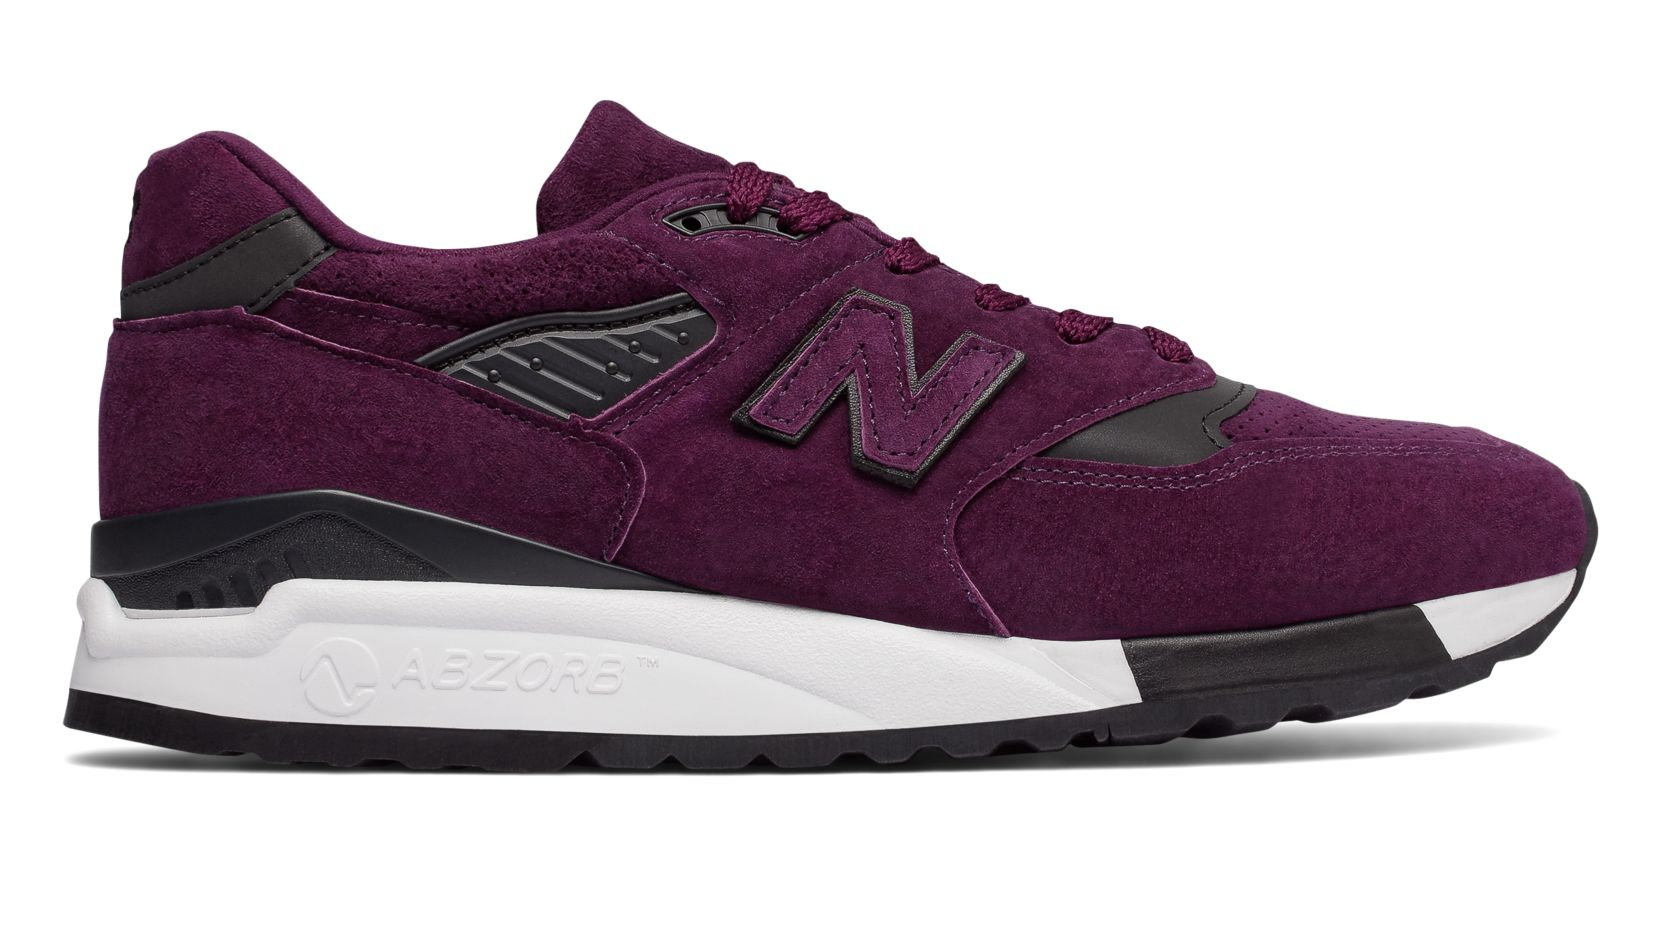 New Balance 998 Made in US Color Spectrum